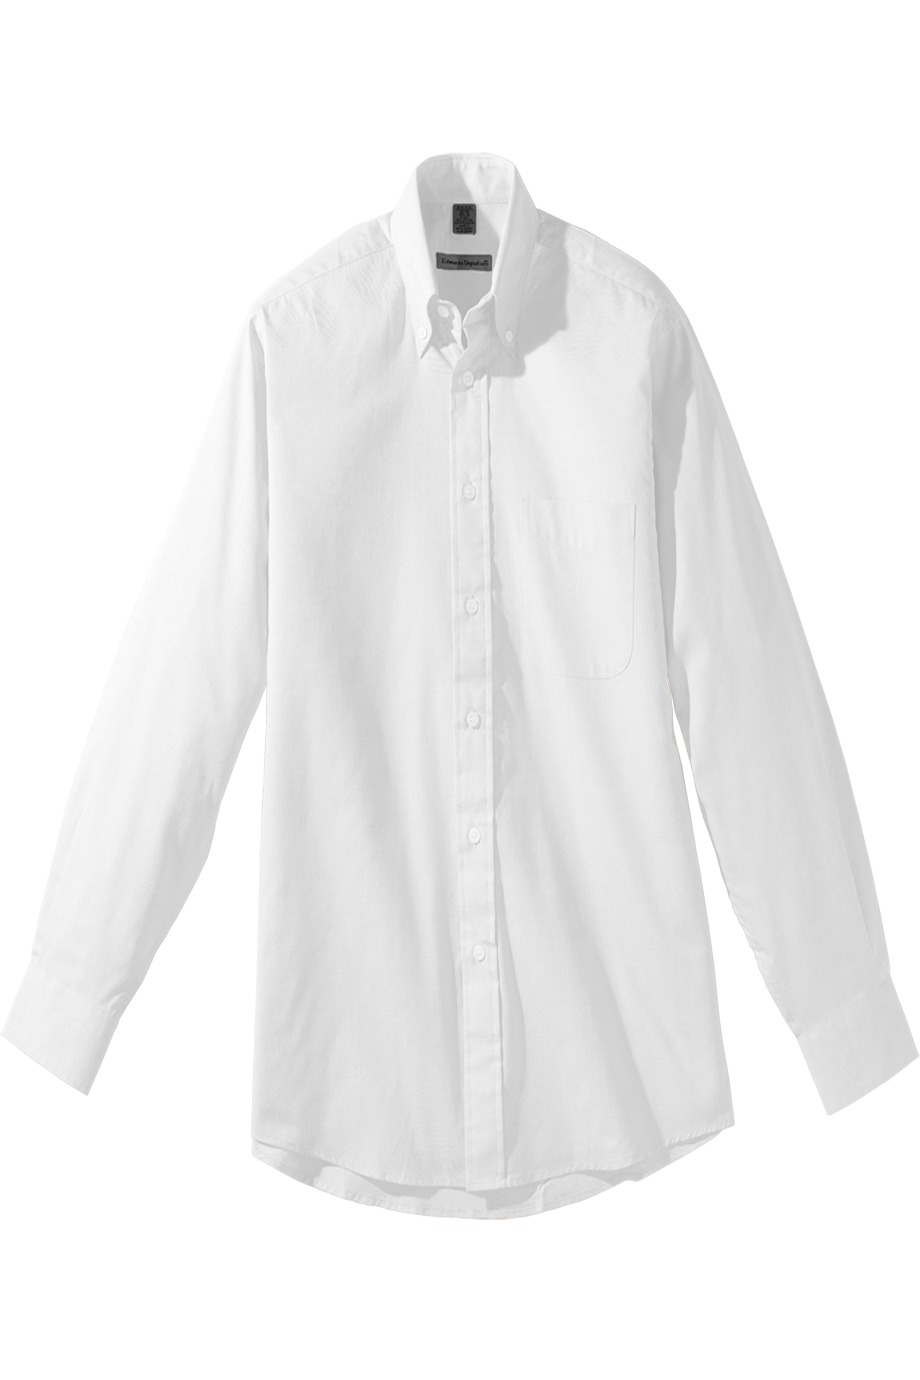 Edwards Garment 1975 - Men's Long Sleeve Pinpoint Oxford ...